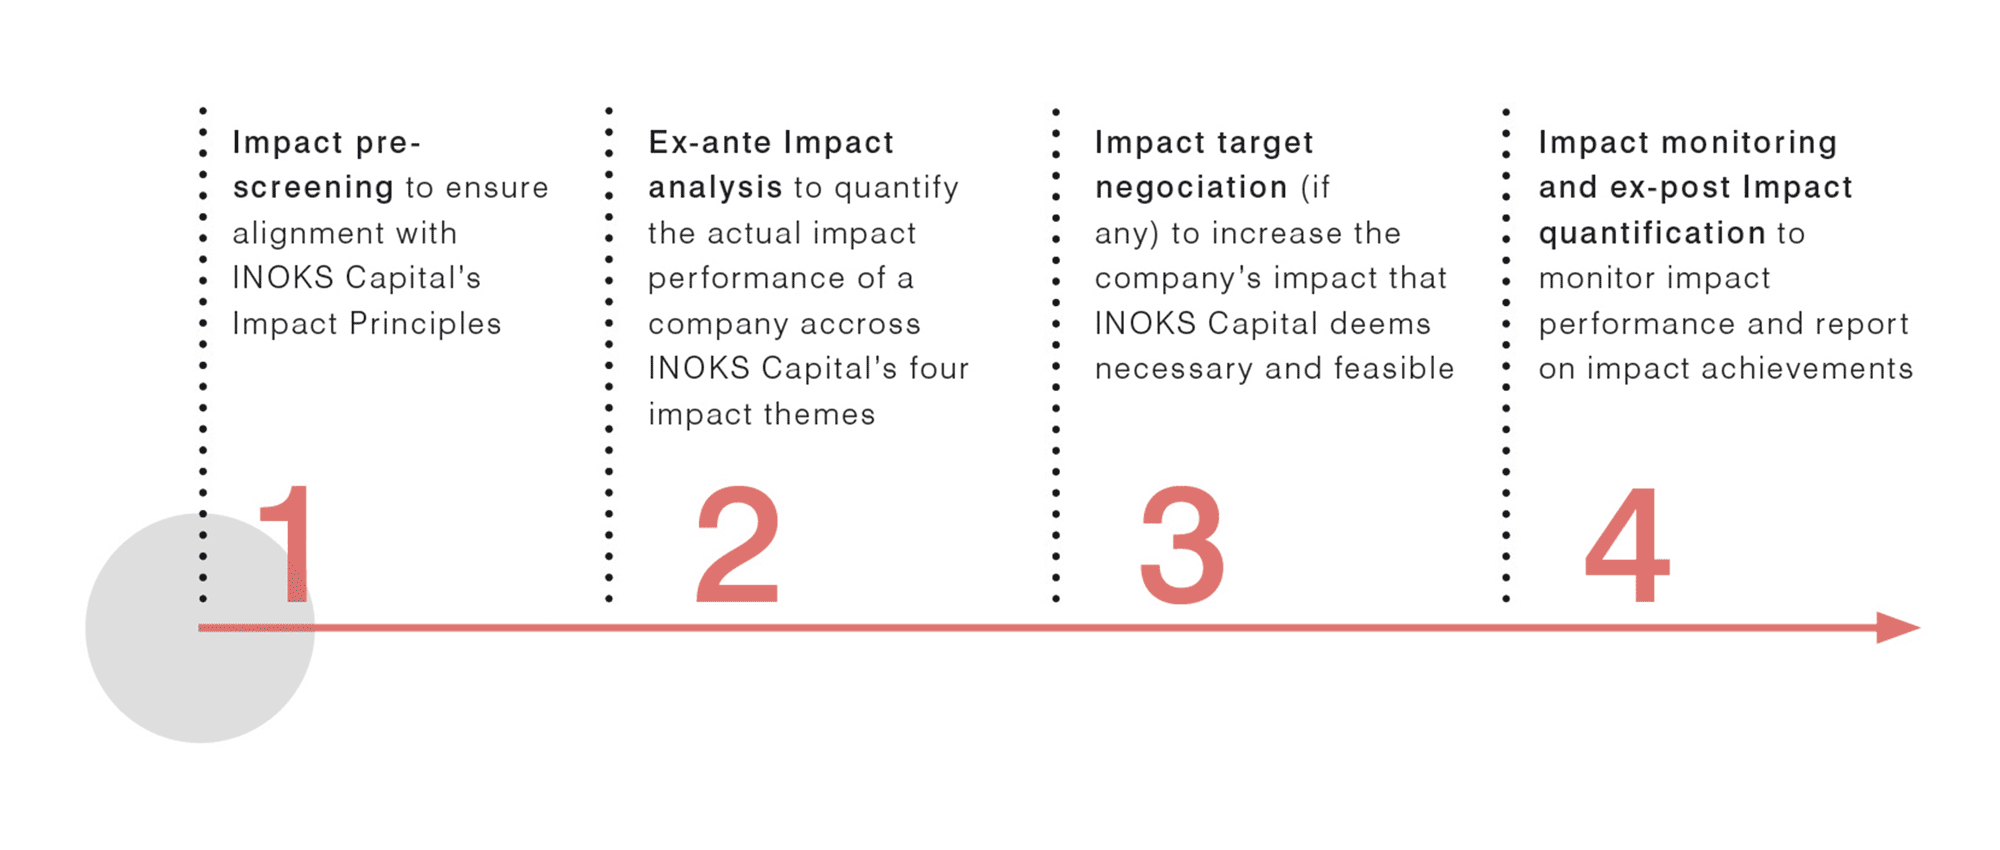 content-Our-Impact-Process